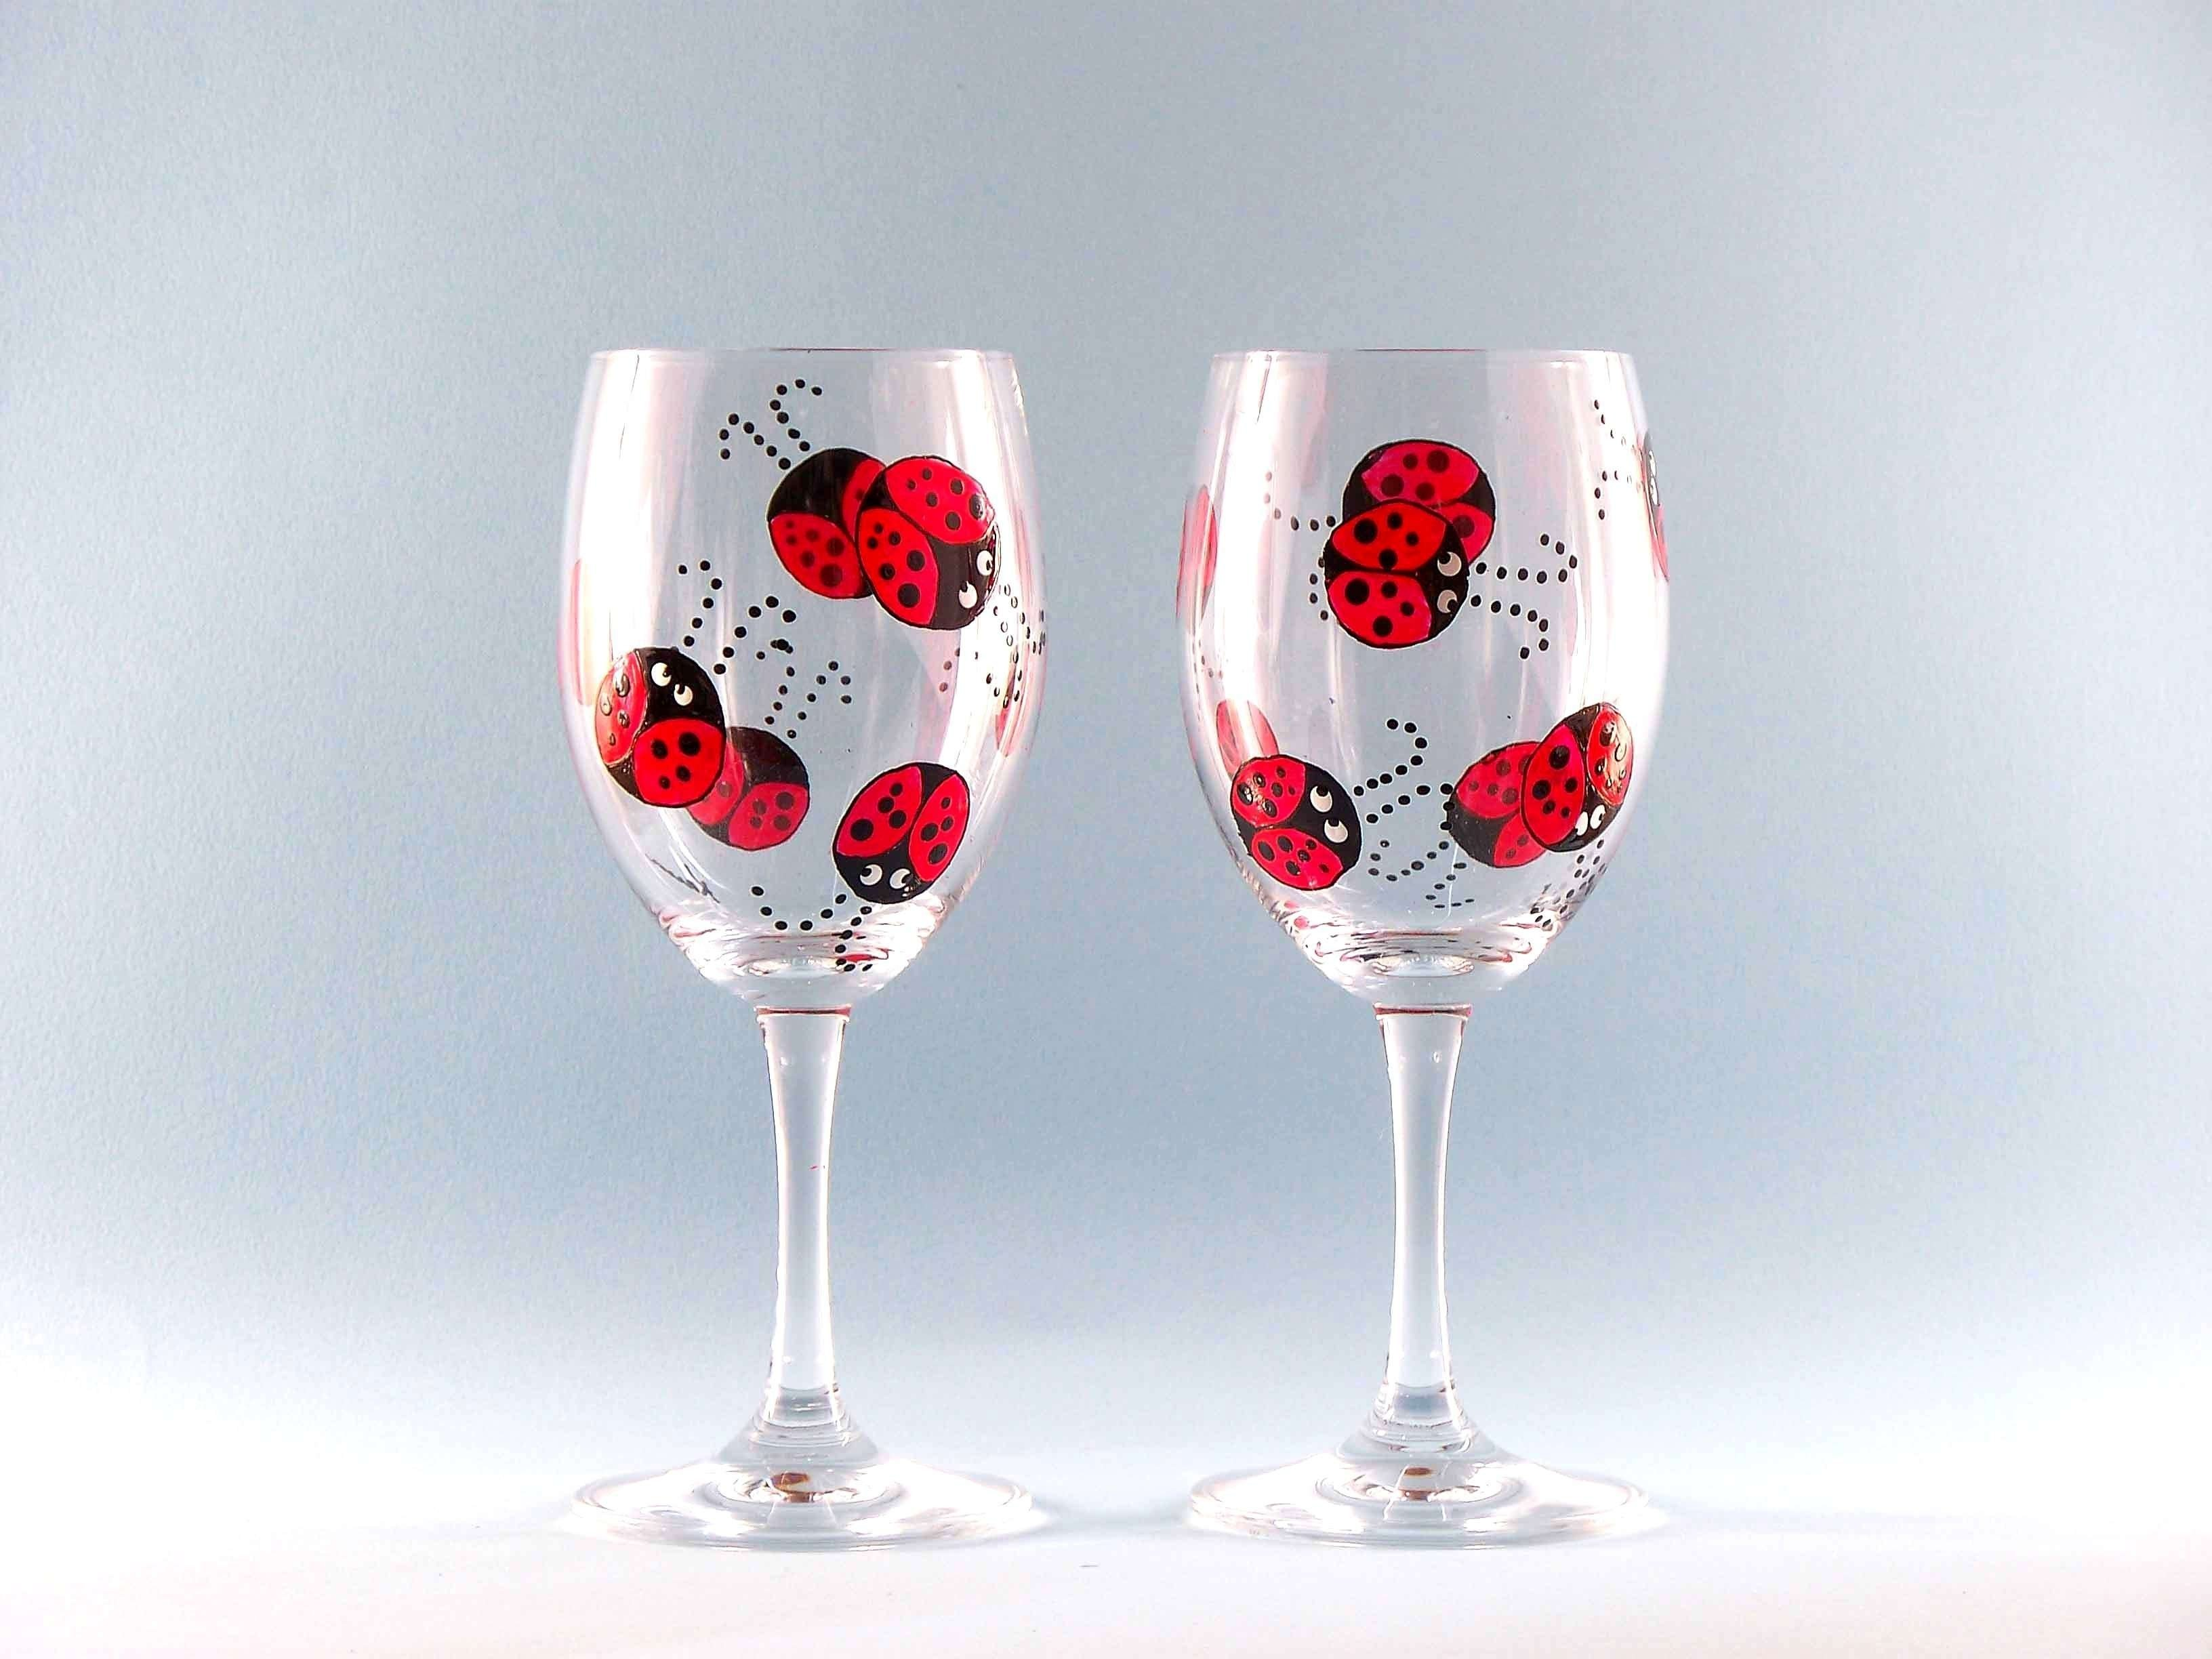 10 Cute Ideas For Painting Wine Glasses decorating wine glasses best of hand painted wine glass ideas the 1 2021